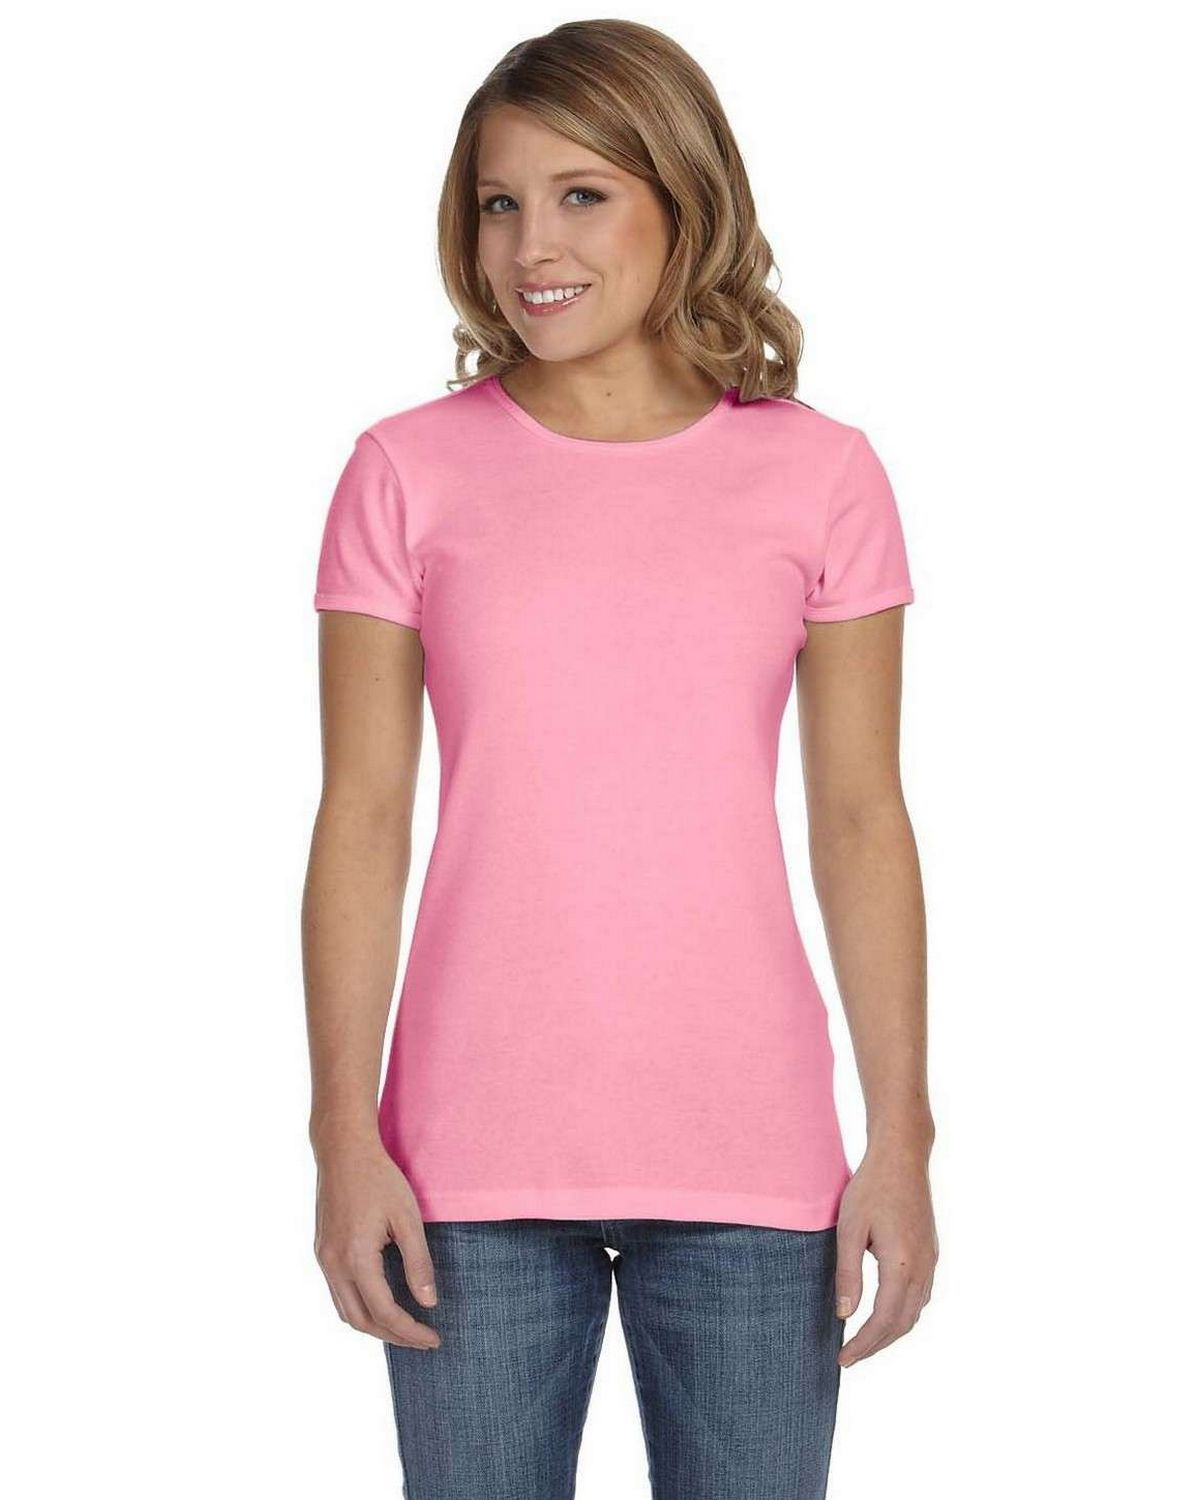 Bella + Canvas 1001 Ladies Stretch Rib Short-Sleeve T-Shirt - Pink - S 1001